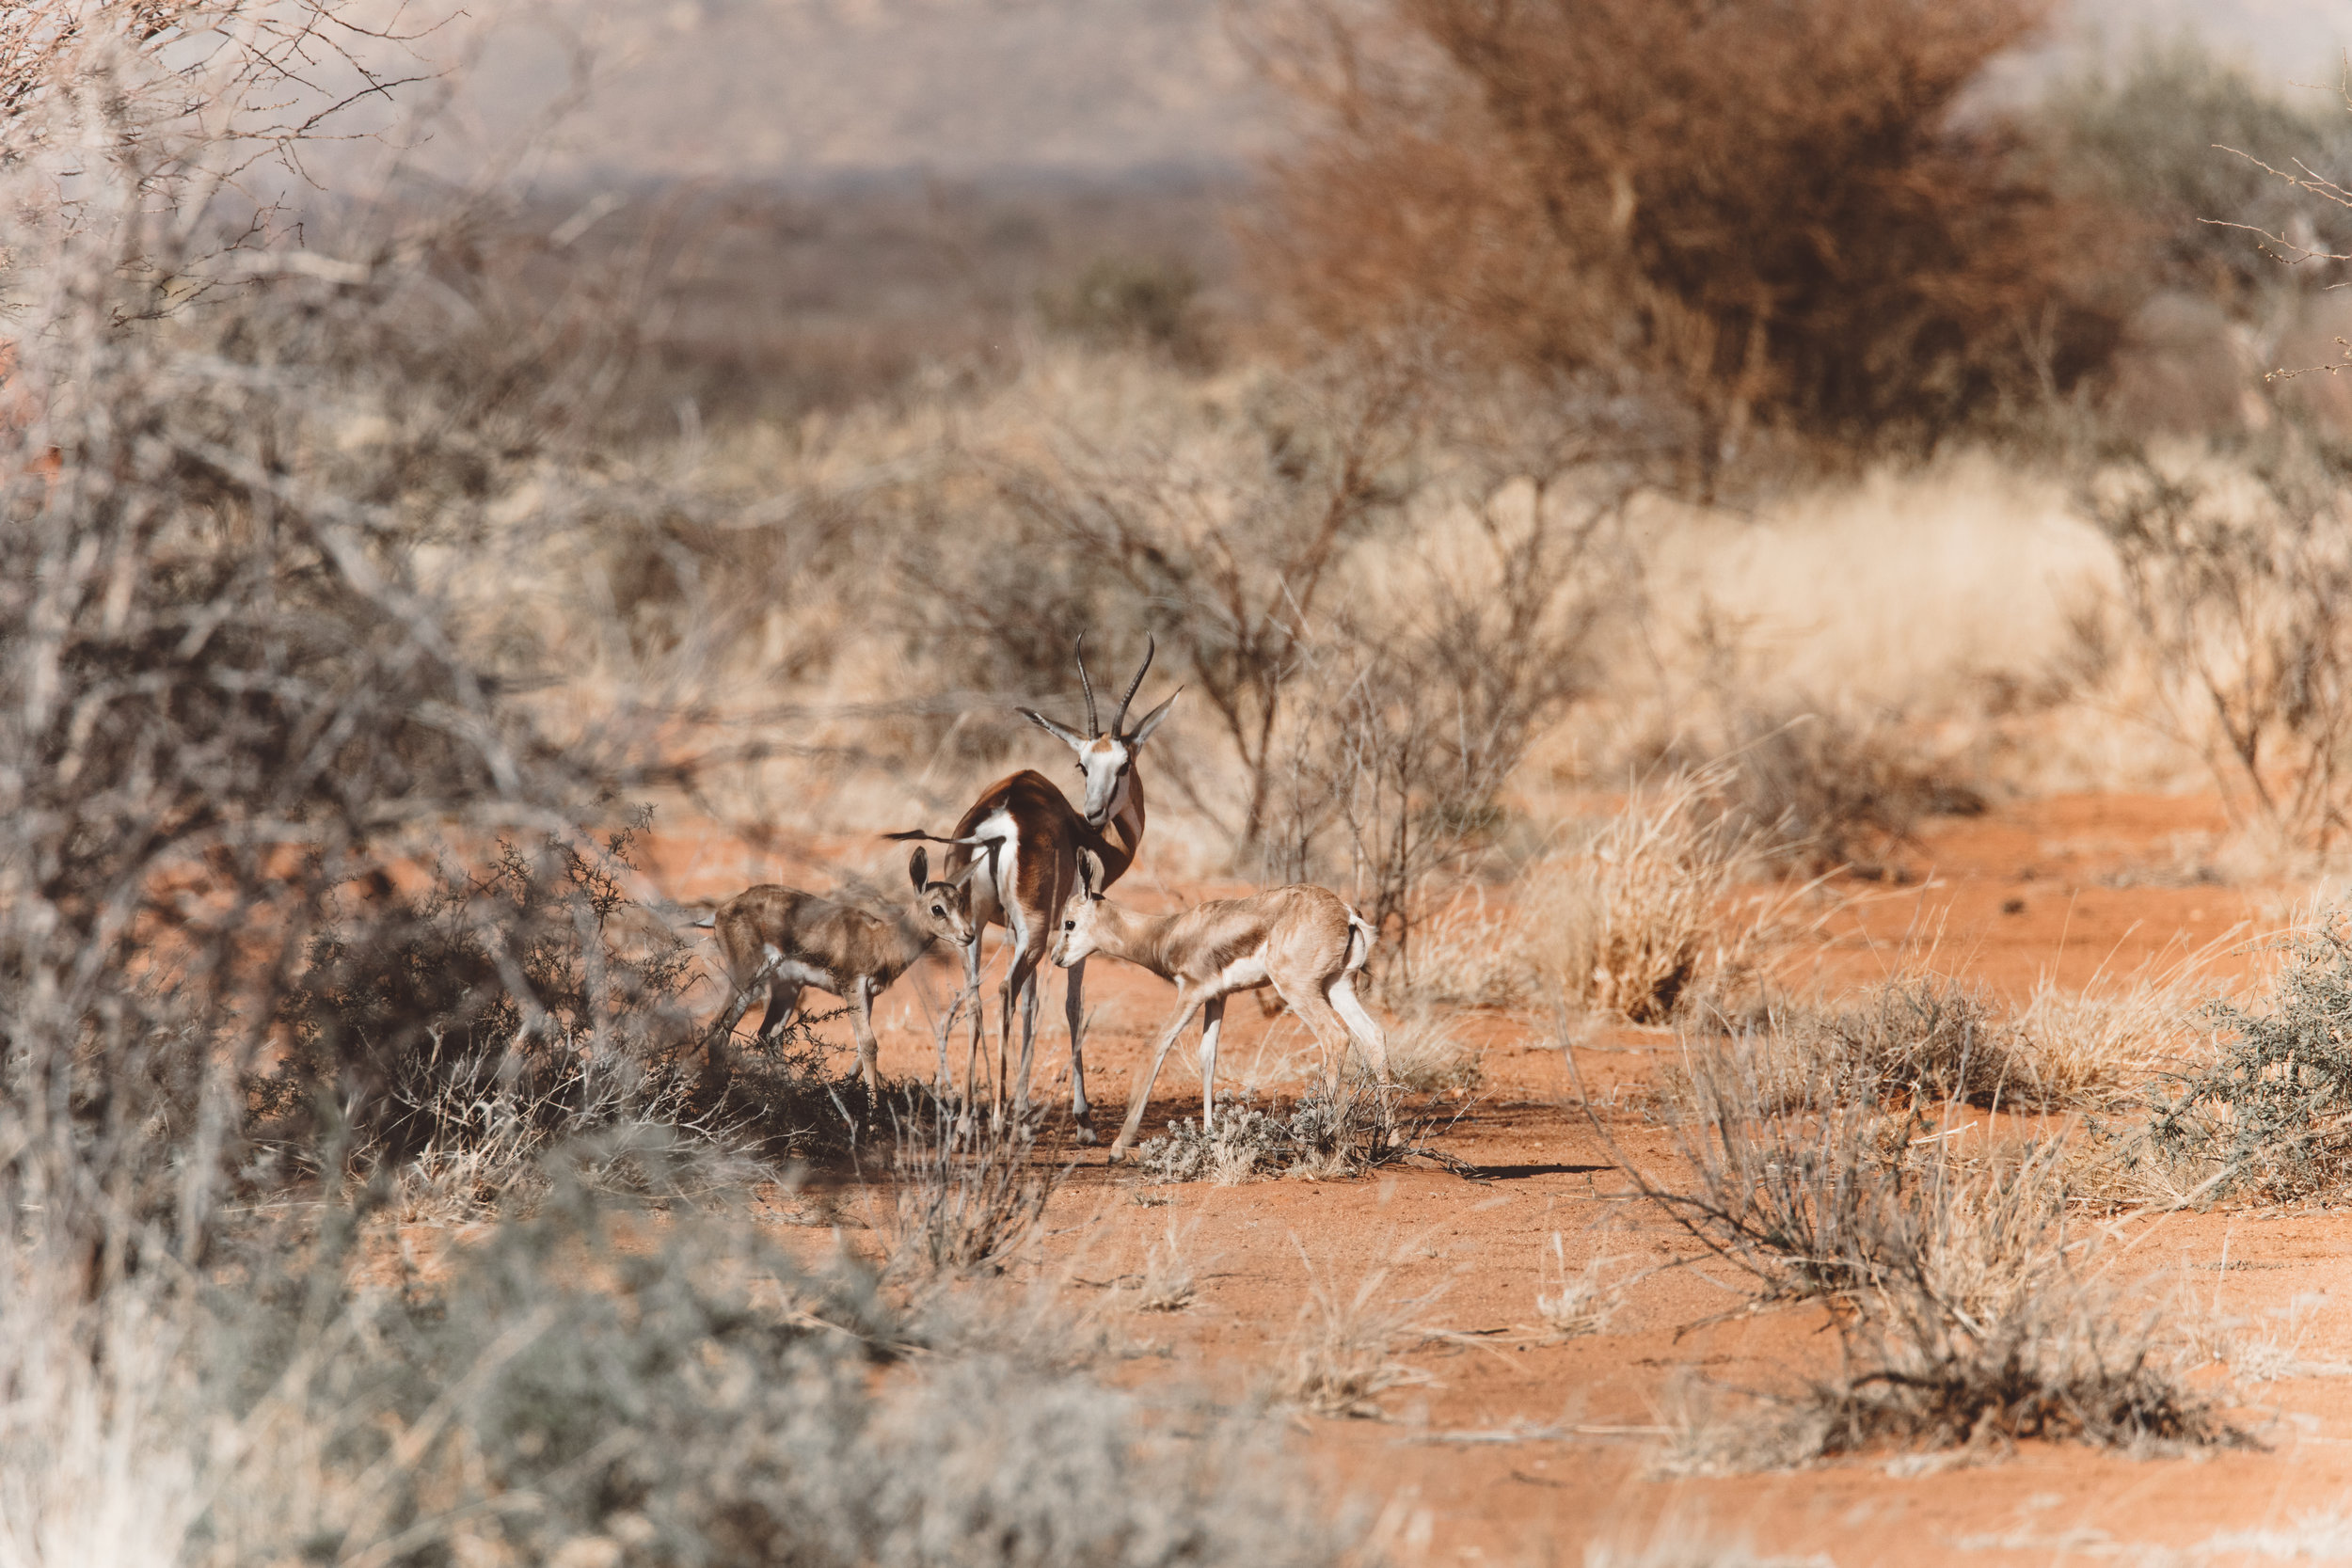 My first sighting: a female springbok and her two calves